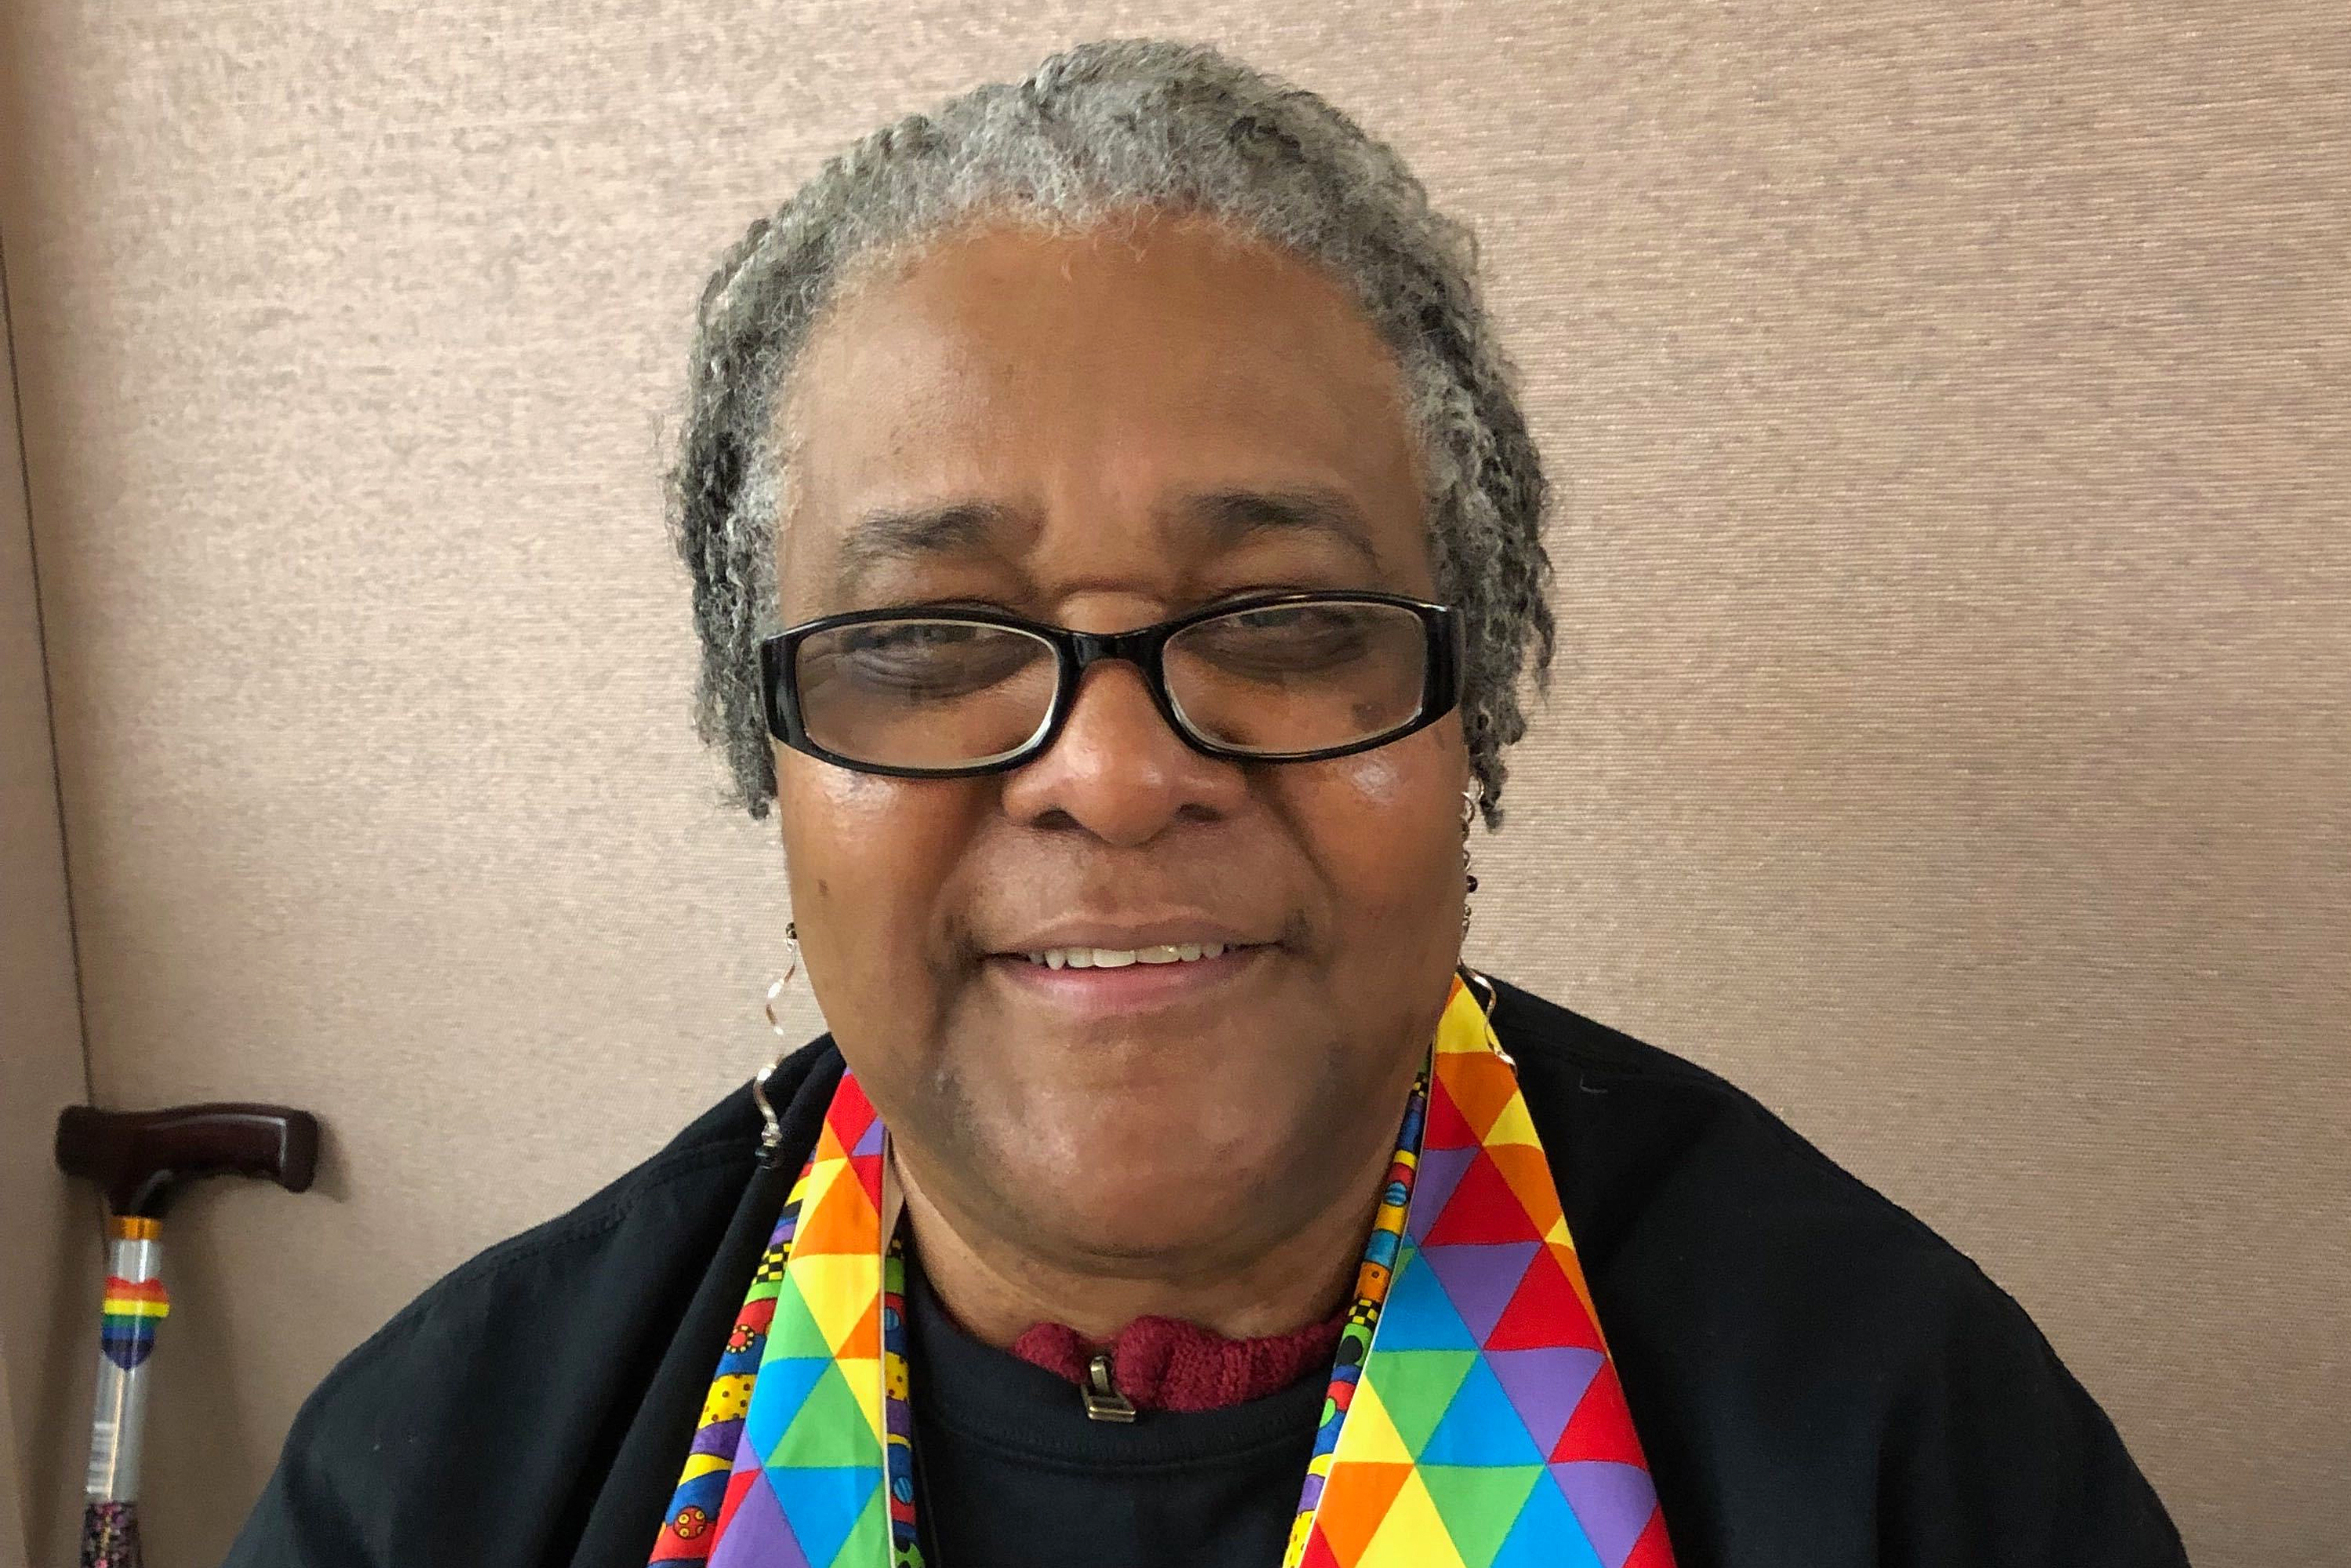 Althea Spencer Miller, 63, assistant professor of New Testament at Drew University Theological School in New Jersey, and a pastor, poses for picture Monday, Feb. 25, 2019 at a national Methodist conference in St. Louis. Miller, who identifies as lesbian, said the United Methodist Church has an opportunity to show that